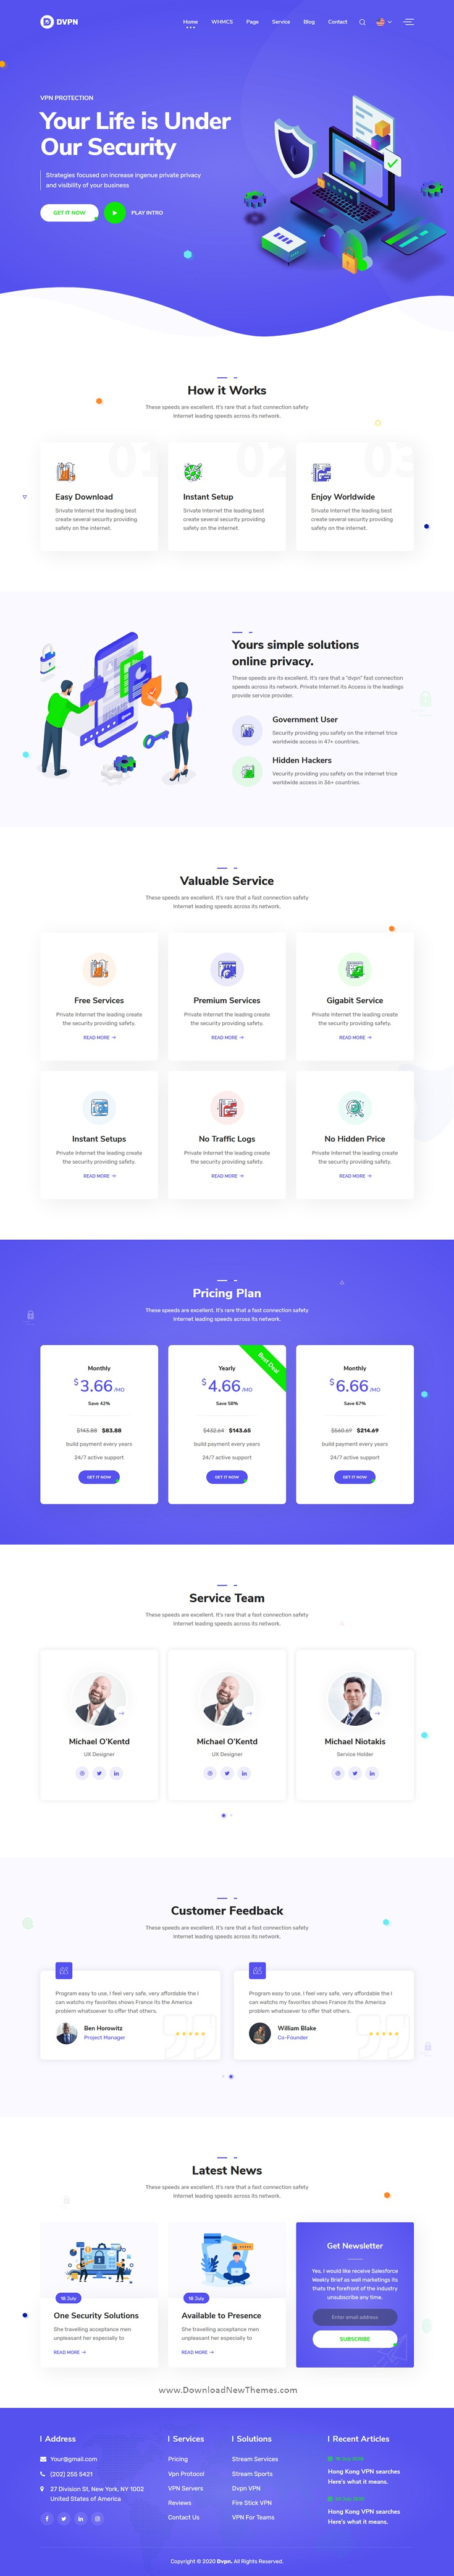 VPN and Cloud Service HTML Template